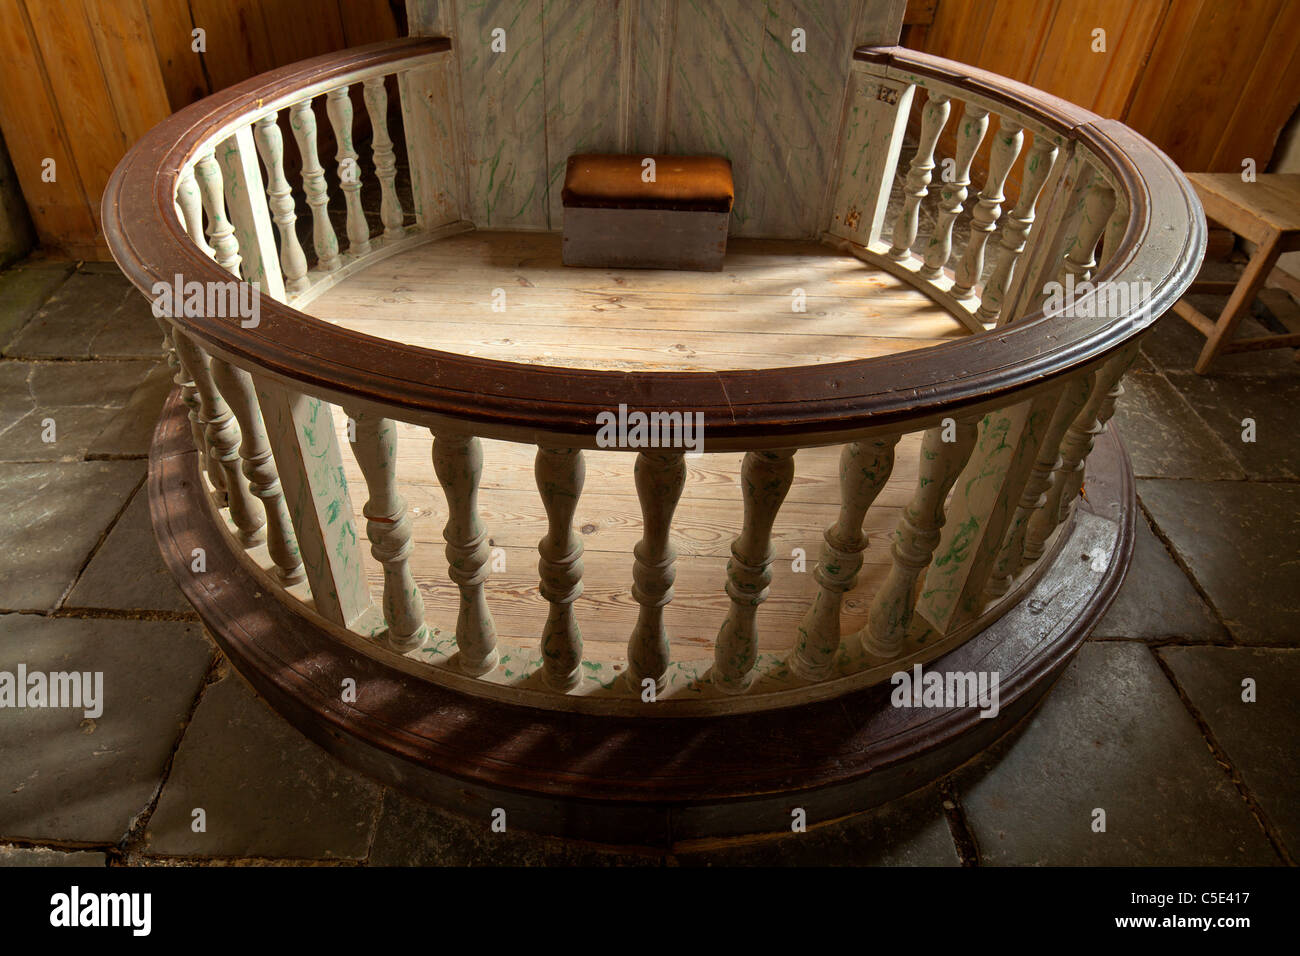 Close-up of a circular altar with rails at the old church - Stock Image